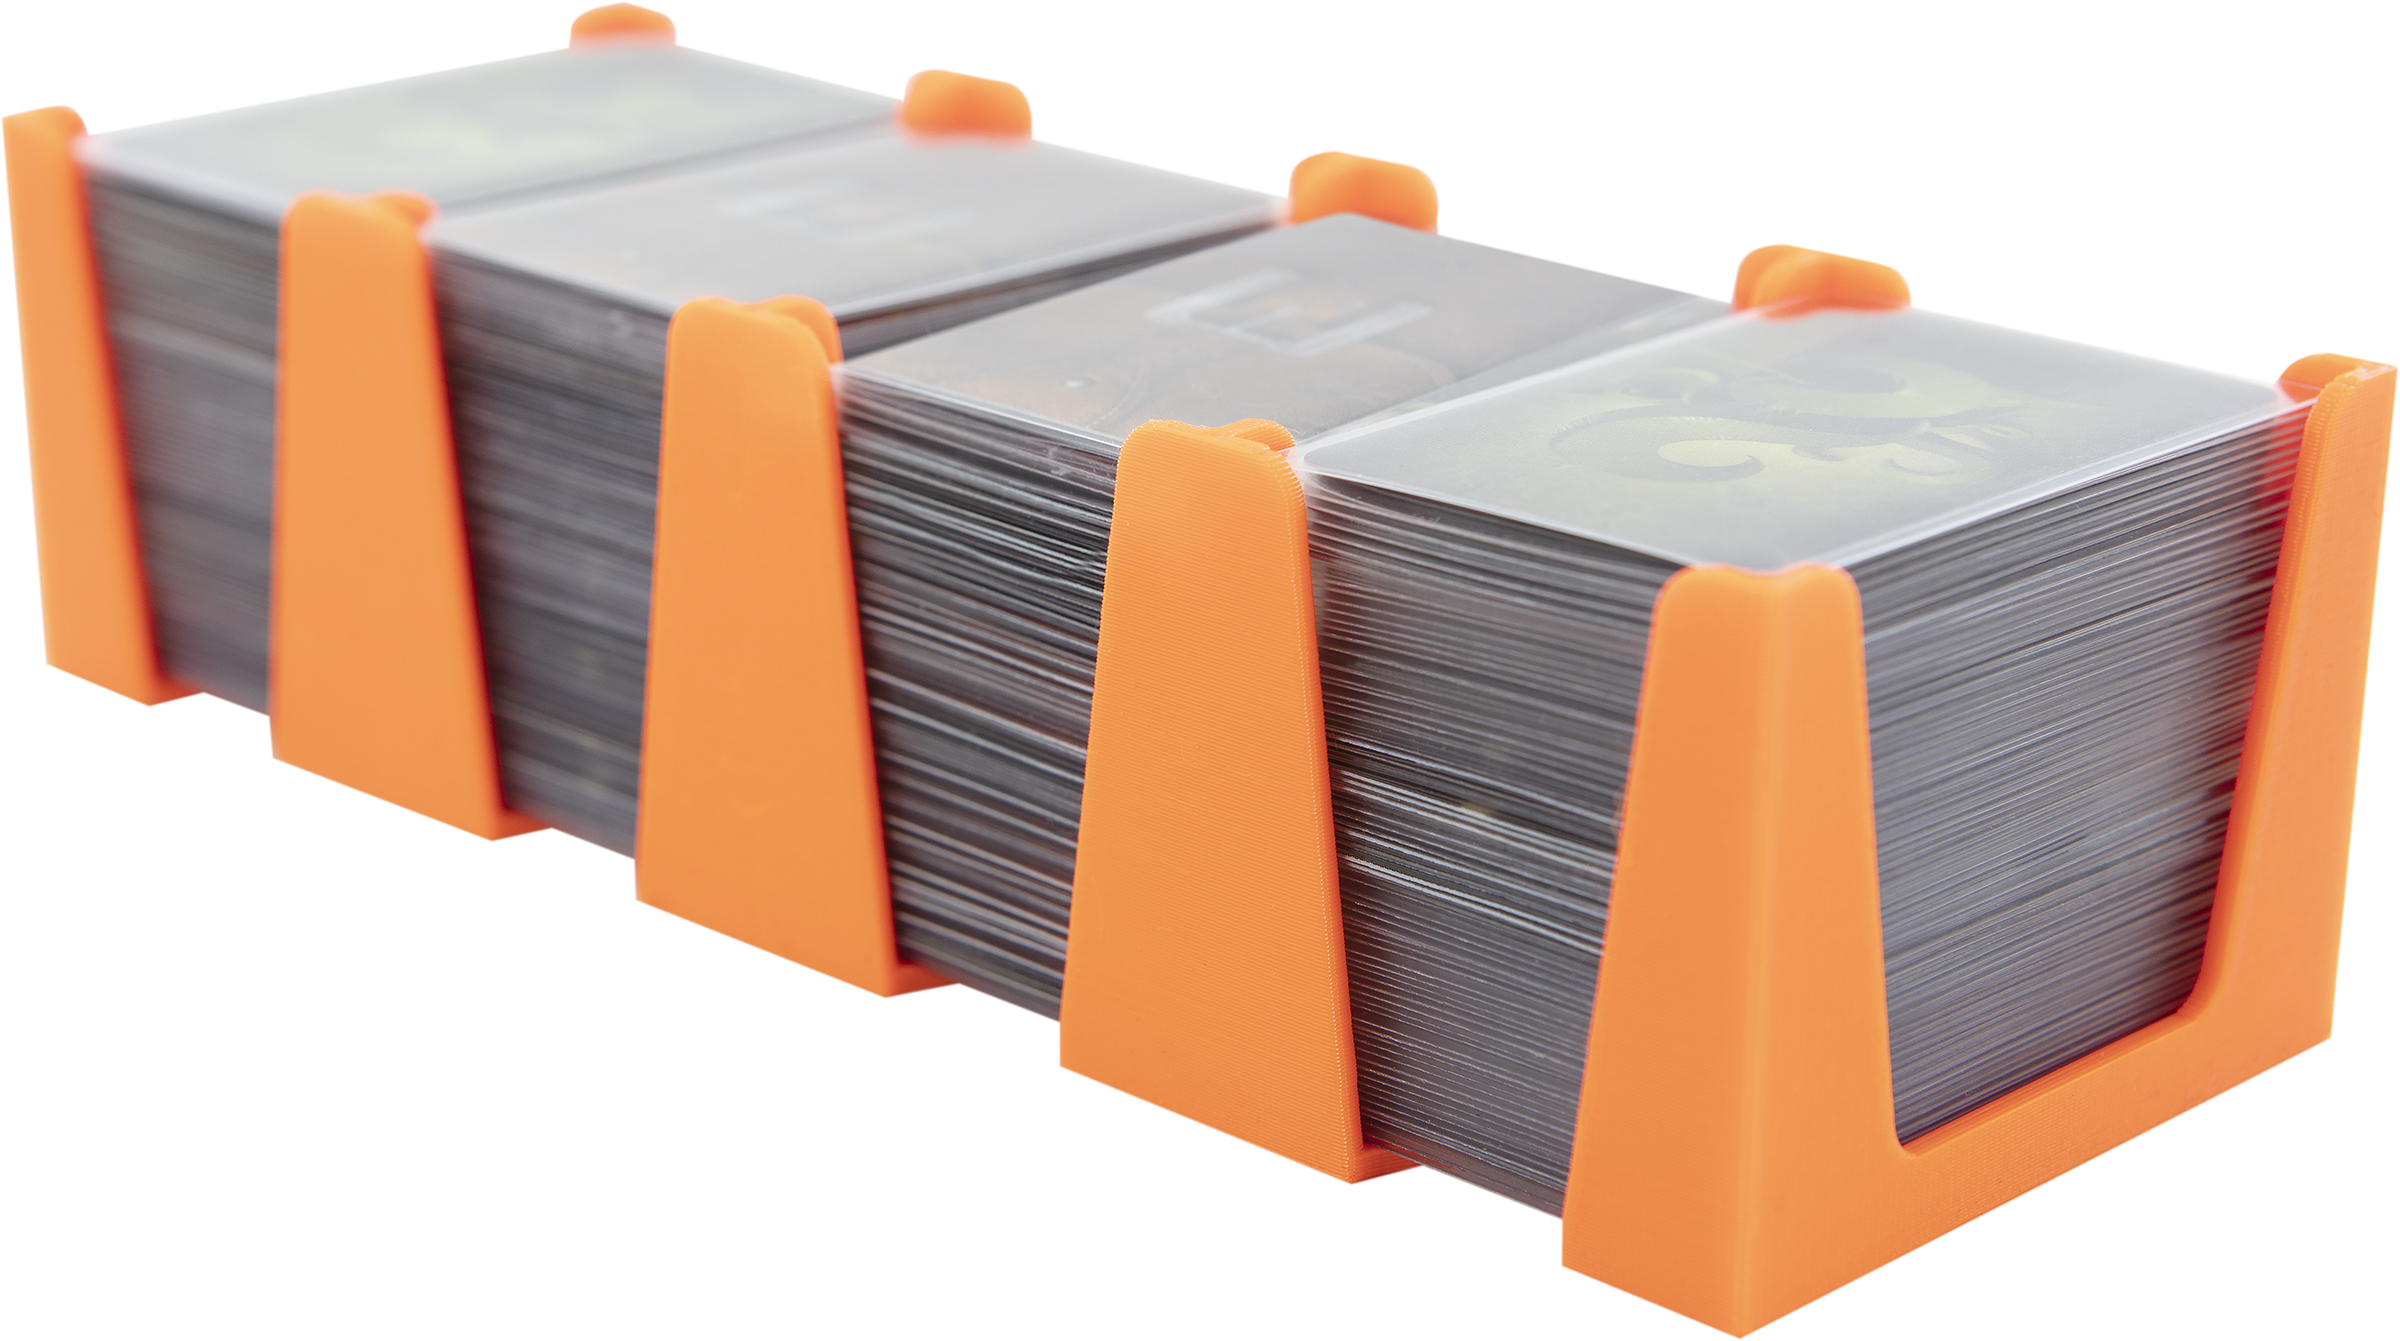 Feldherr Card Holder for game cards in Mini American Board Game Size - 600 cards - 4 trays